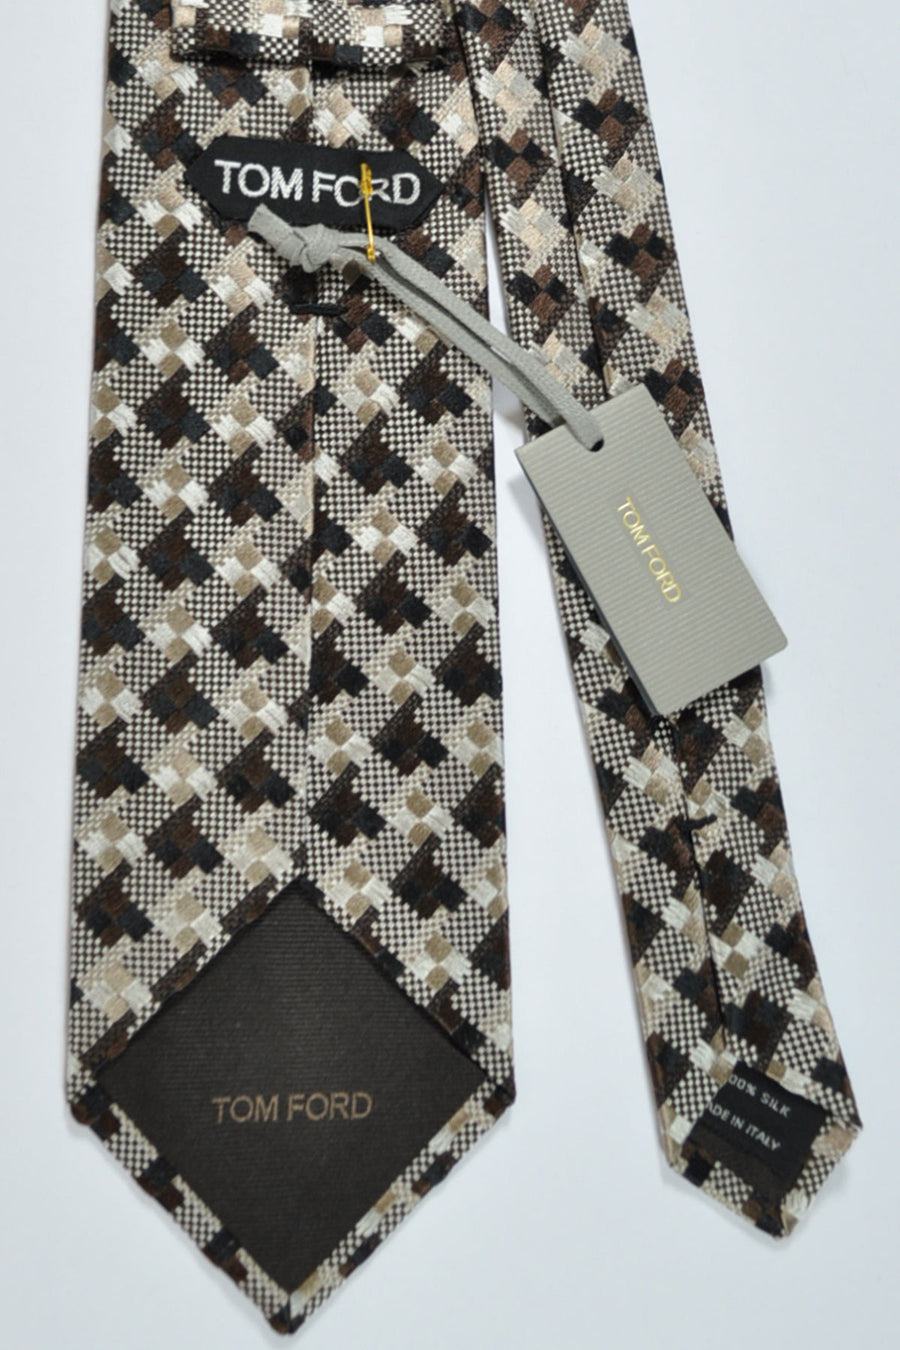 Tom Ford Tie Brown Gold Silver